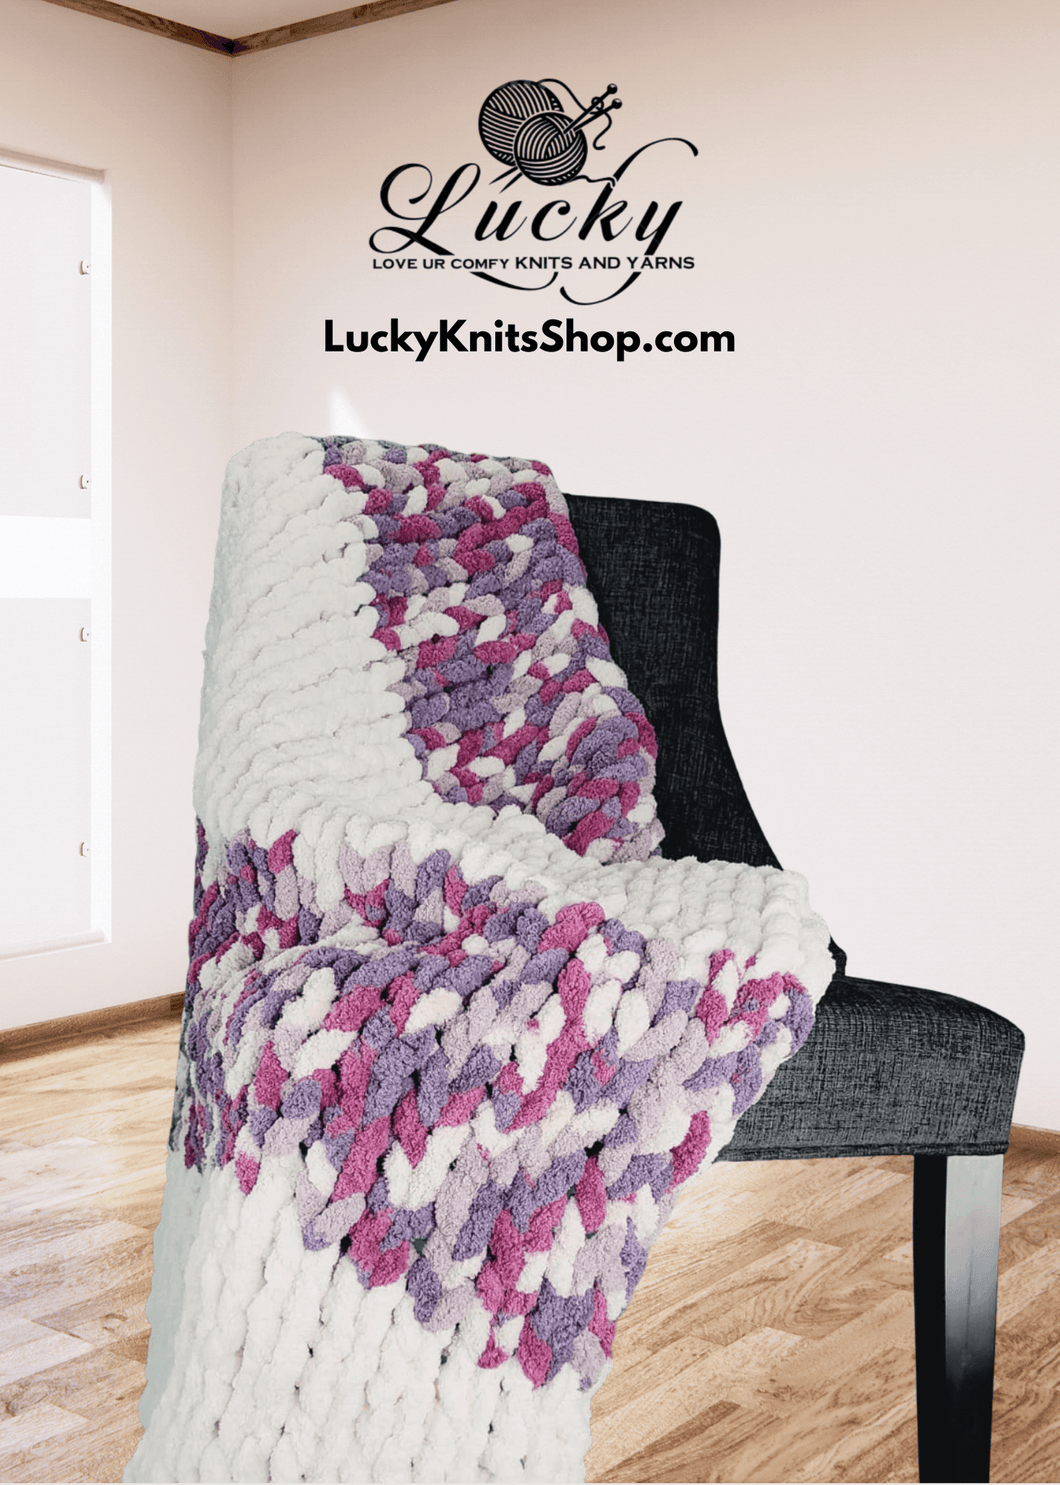 Icy Plum Throw/Blanket Blankets Luckyknitsshop Lapghan 36